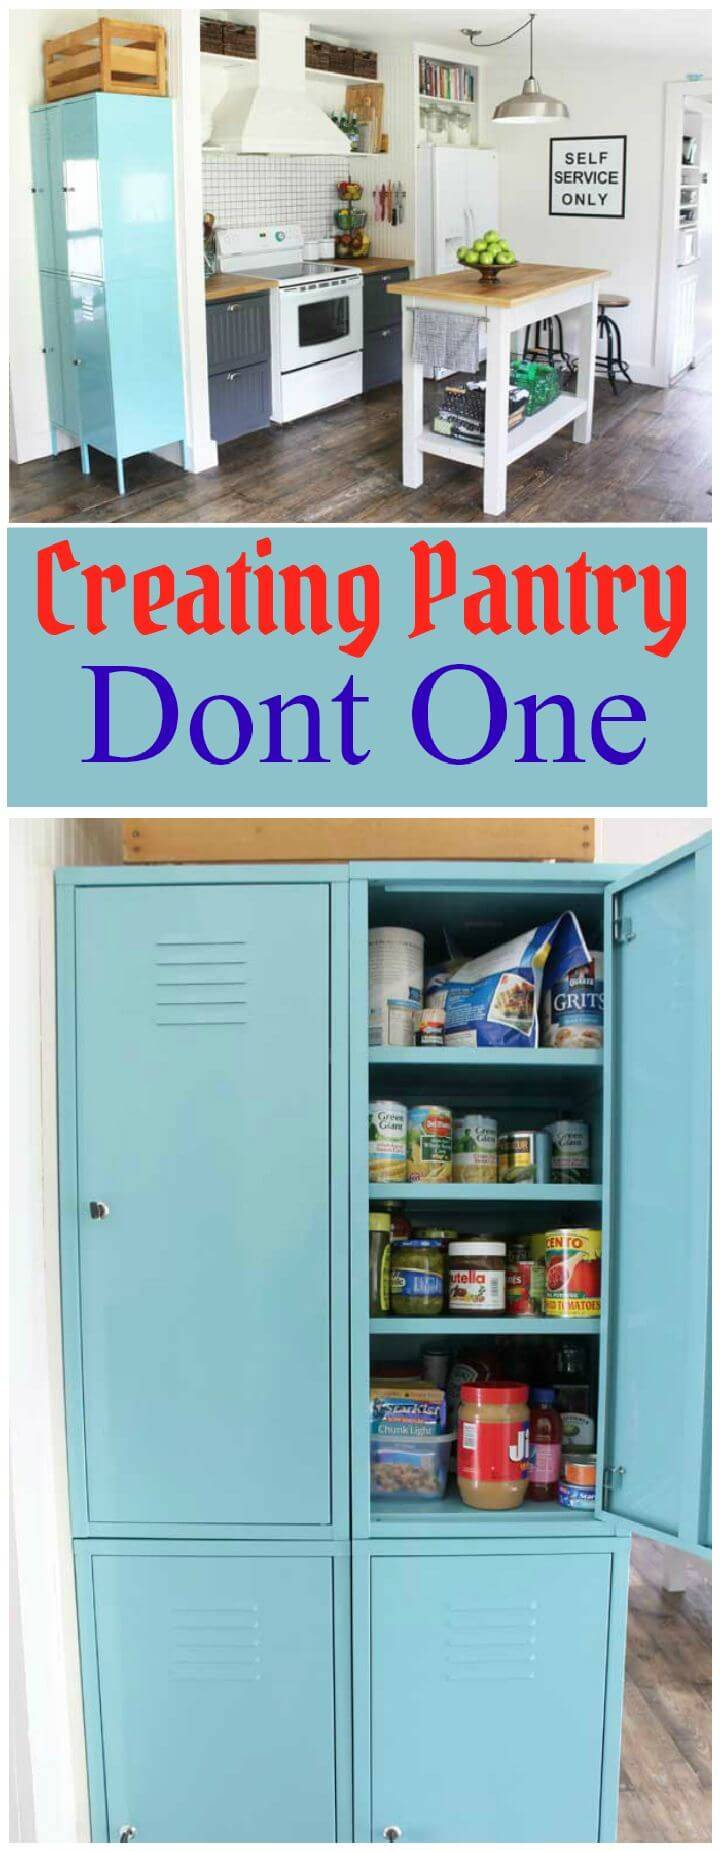 Creating Pantry Dont One